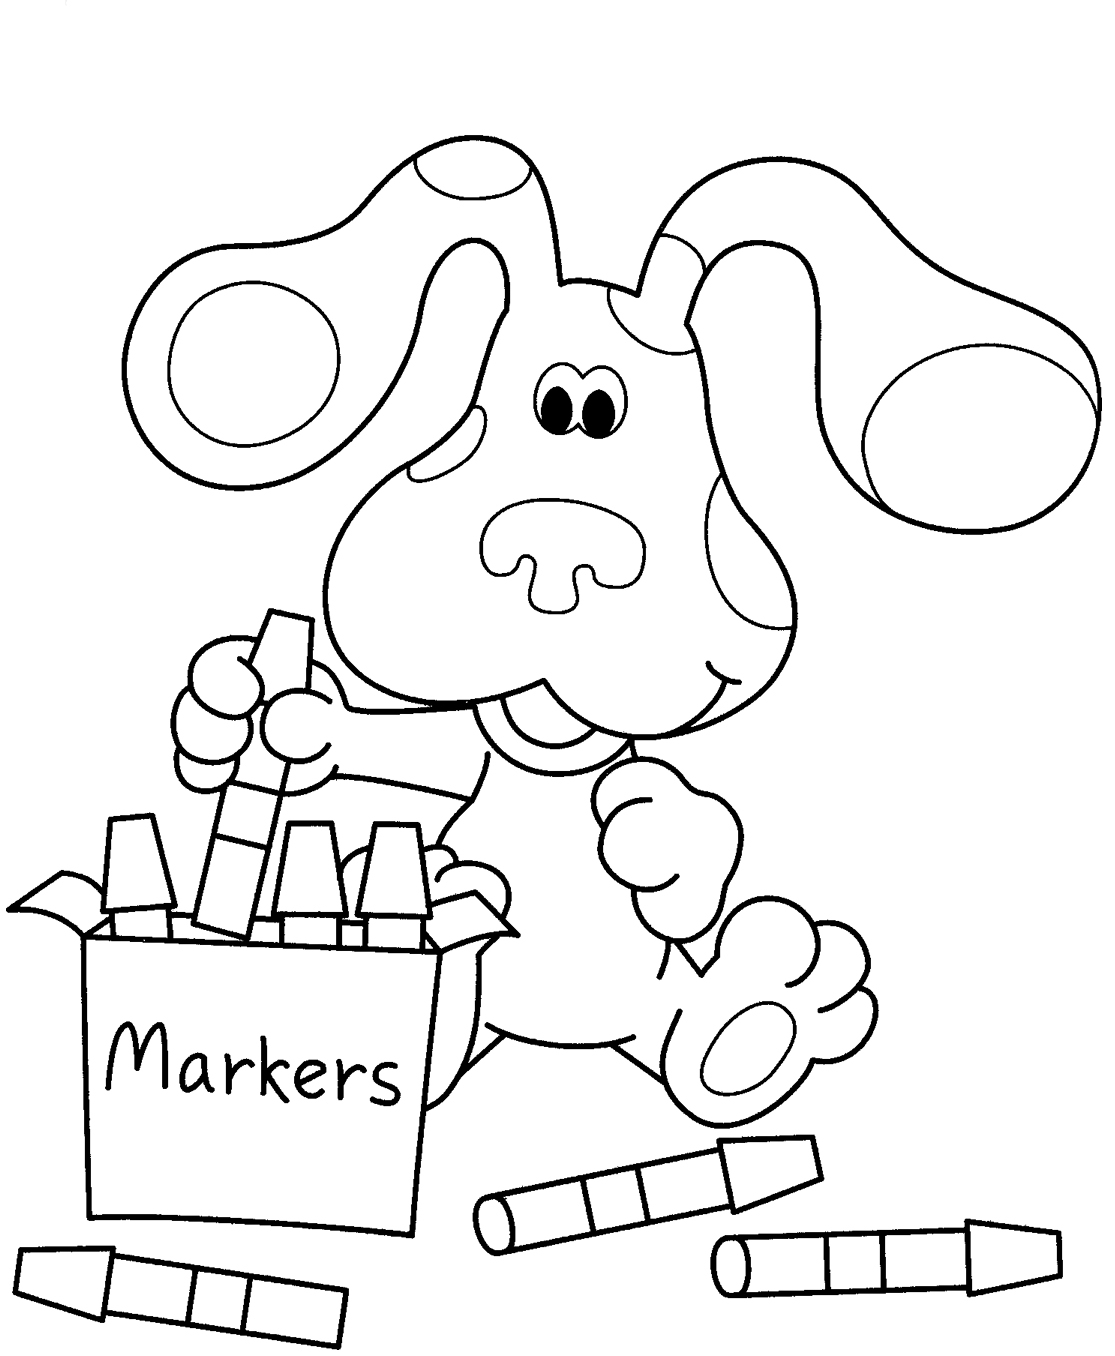 Nick Jr Coloring Pages 14 Coloring Kids Nick Junior Coloring Pages